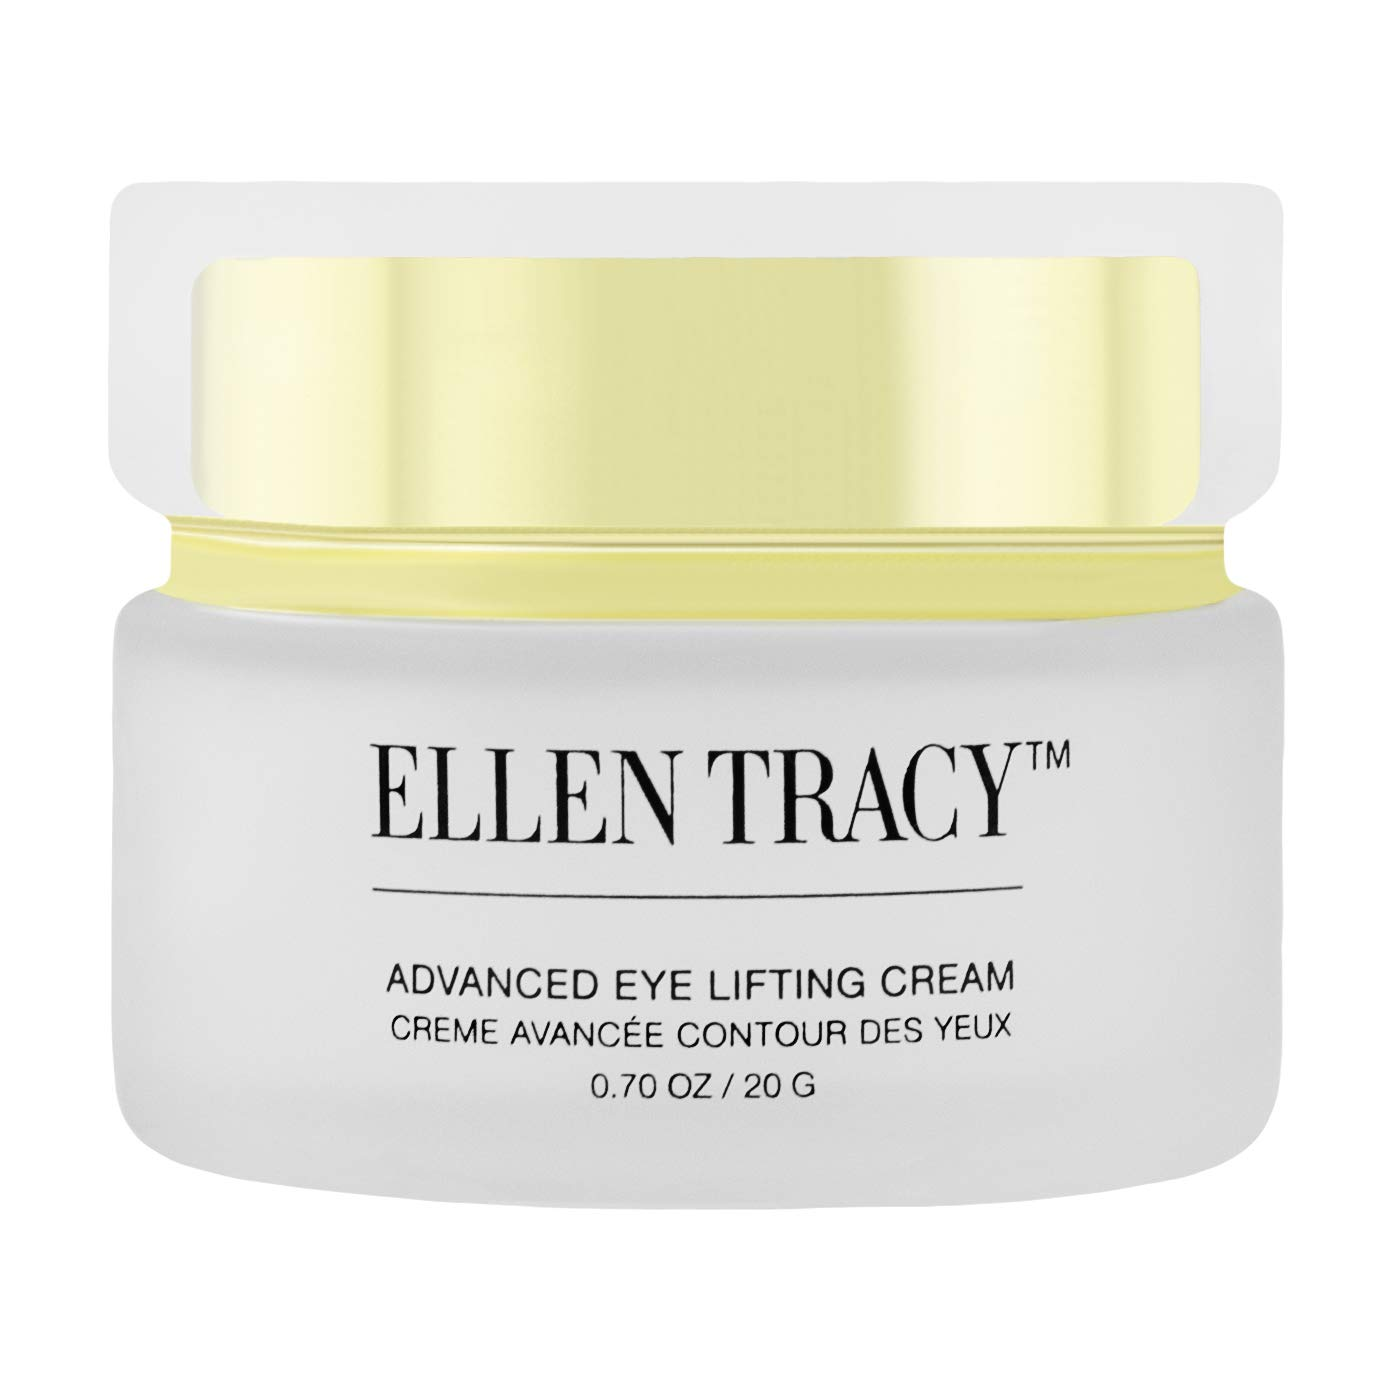 Ellen Tracy Advanced Eye Lifting Cream for Anti Aging, Under Eye Bags Puffiness and Dark Circles Treatment, Moisturizing and Firming, Reduces Wrinkles, Fine Lines, Crows Feet, Womens Eye Care /.70 OZ